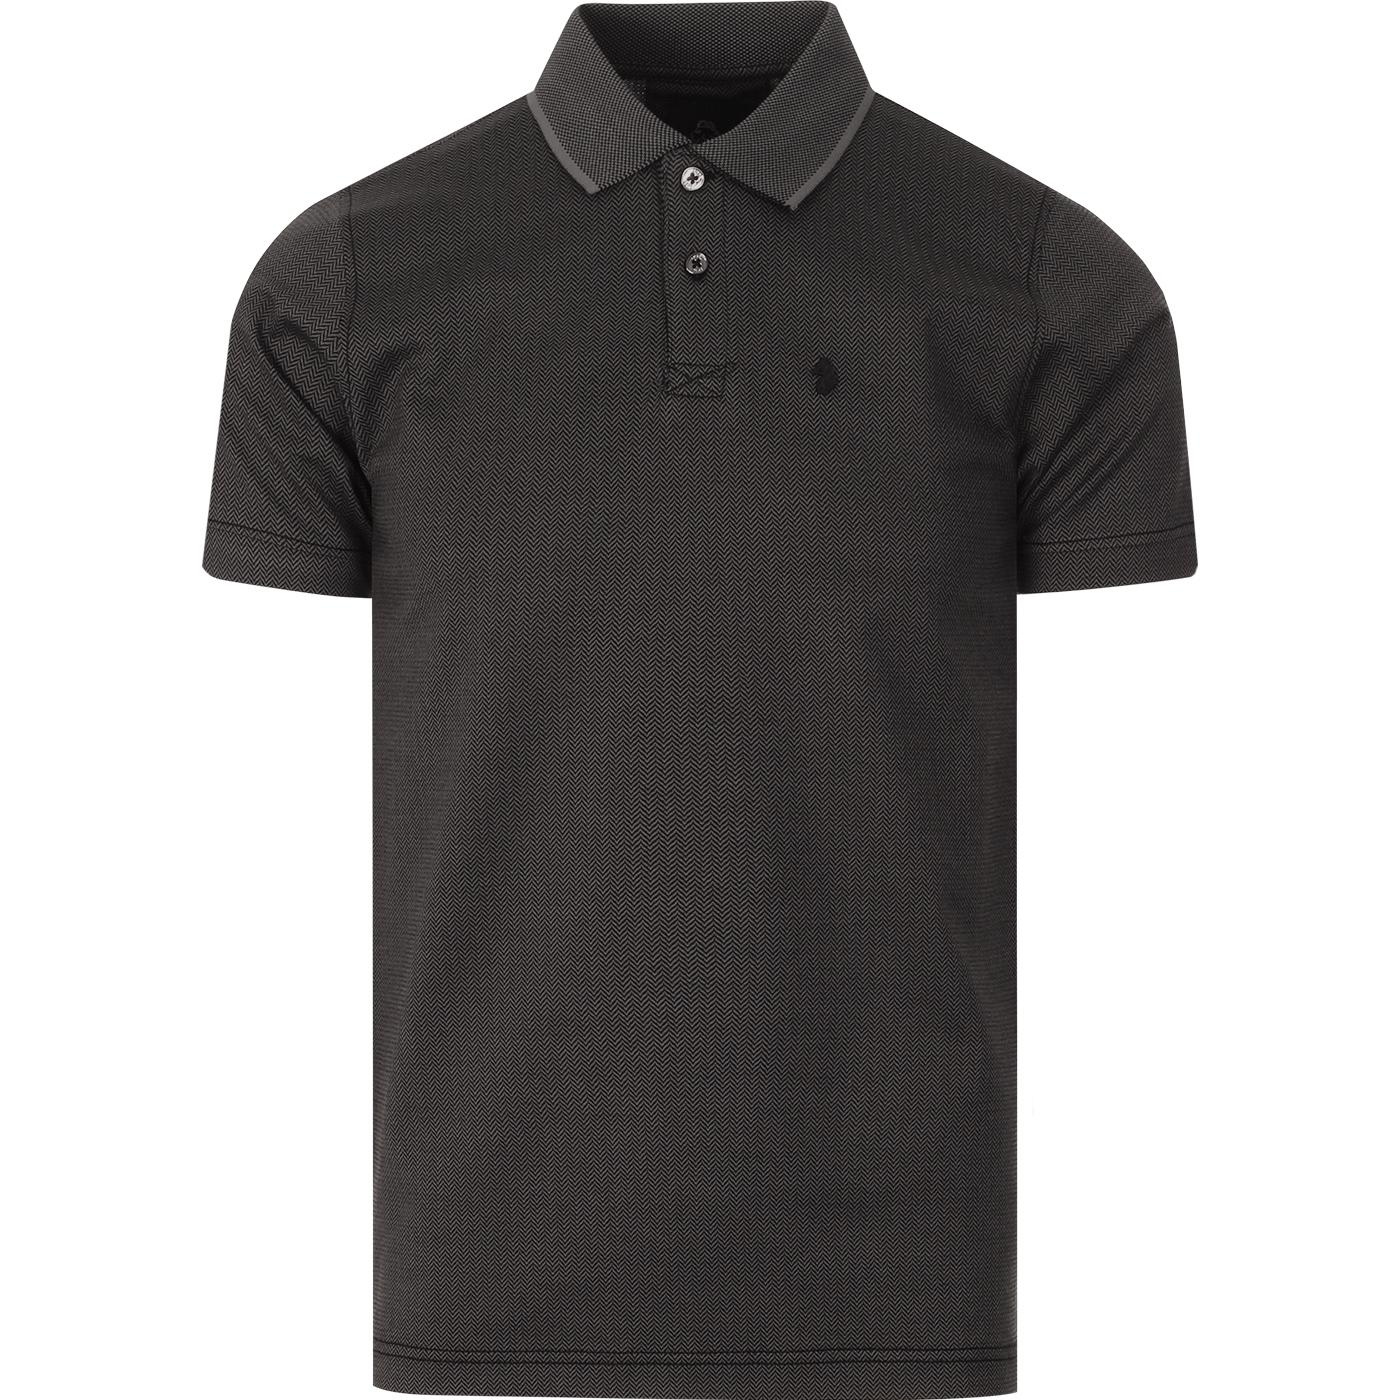 Herringboner LUKE Retro Mod Herringbone Polo Shirt